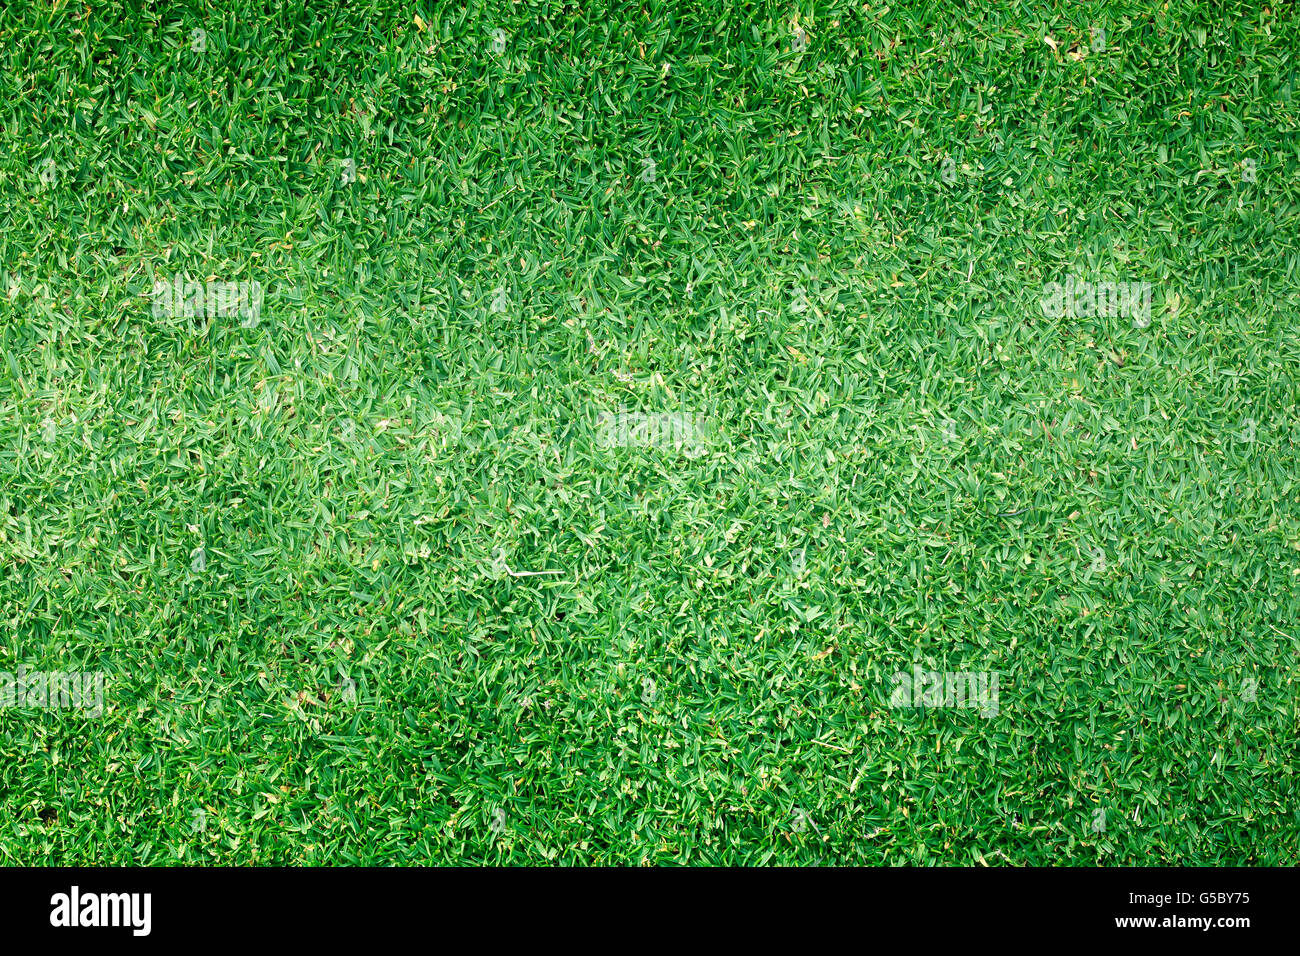 Golf Courses green lawn pattern textured background. Stock Photo